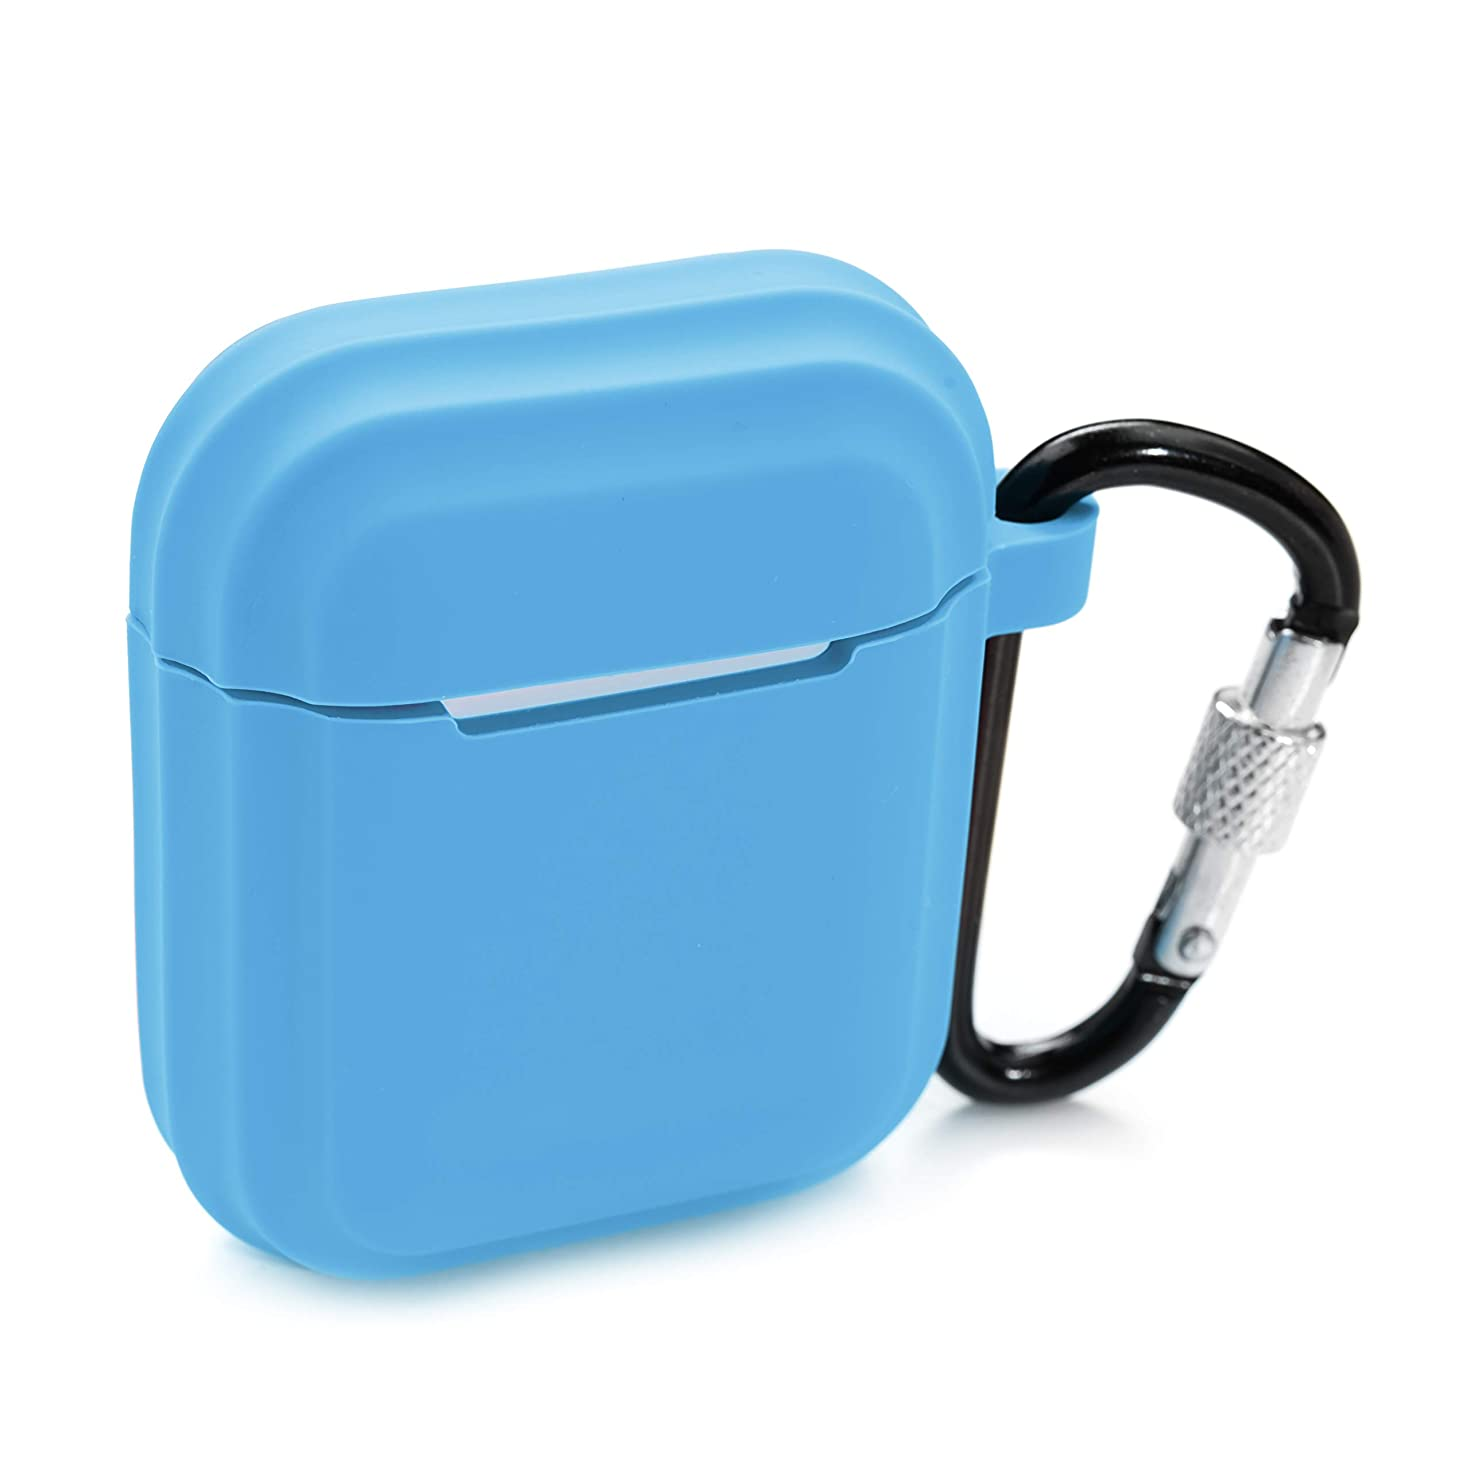 PeepCase AirPods Case Cover for AirPod 1 & 2 Light Blue Shockproof with Wireless Charging Support and Keychain